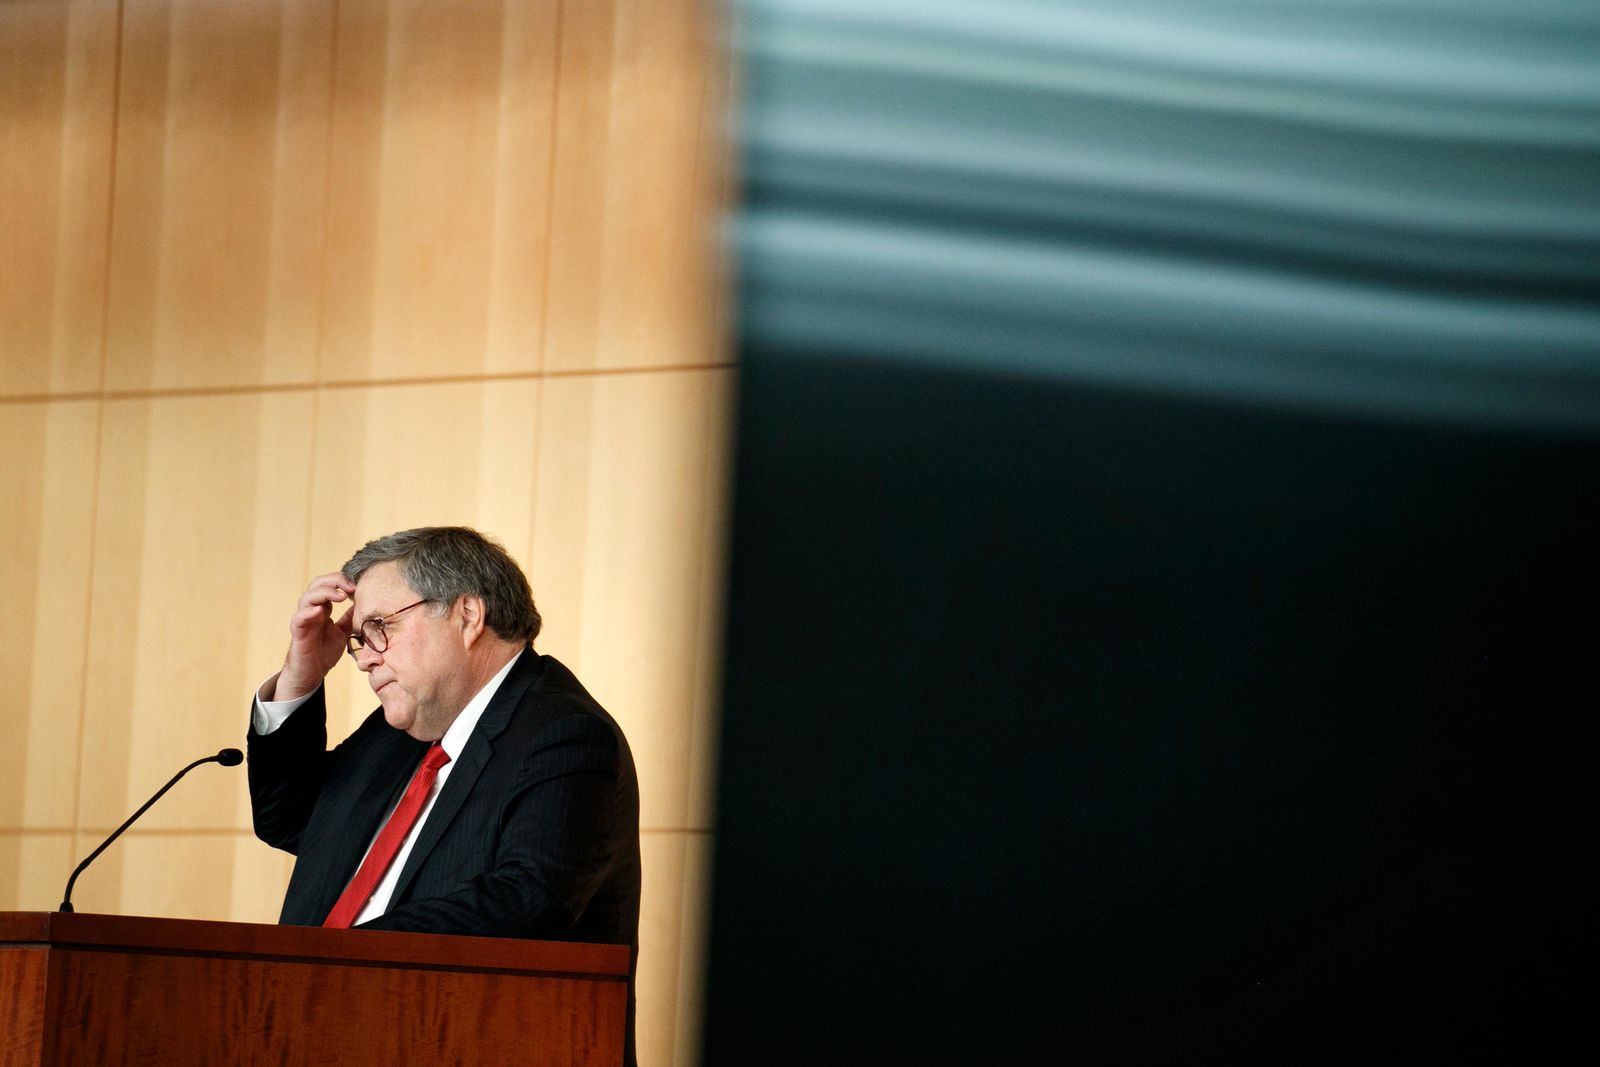 FILE - In this Thursday, Oct. 3, 2019, file photo Attorney General Barr William Barr pauses as he speaks at the Securities and Exchange Commission (SEC) Criminal Coordination Conference at the SEC in Washington. Barr wants Facebook to give law enforcement a way to read encrypted messages sent by users, re-igniting tensions between tech companies and law enforcement. (AP Photo/Jacquelyn Martin, File)